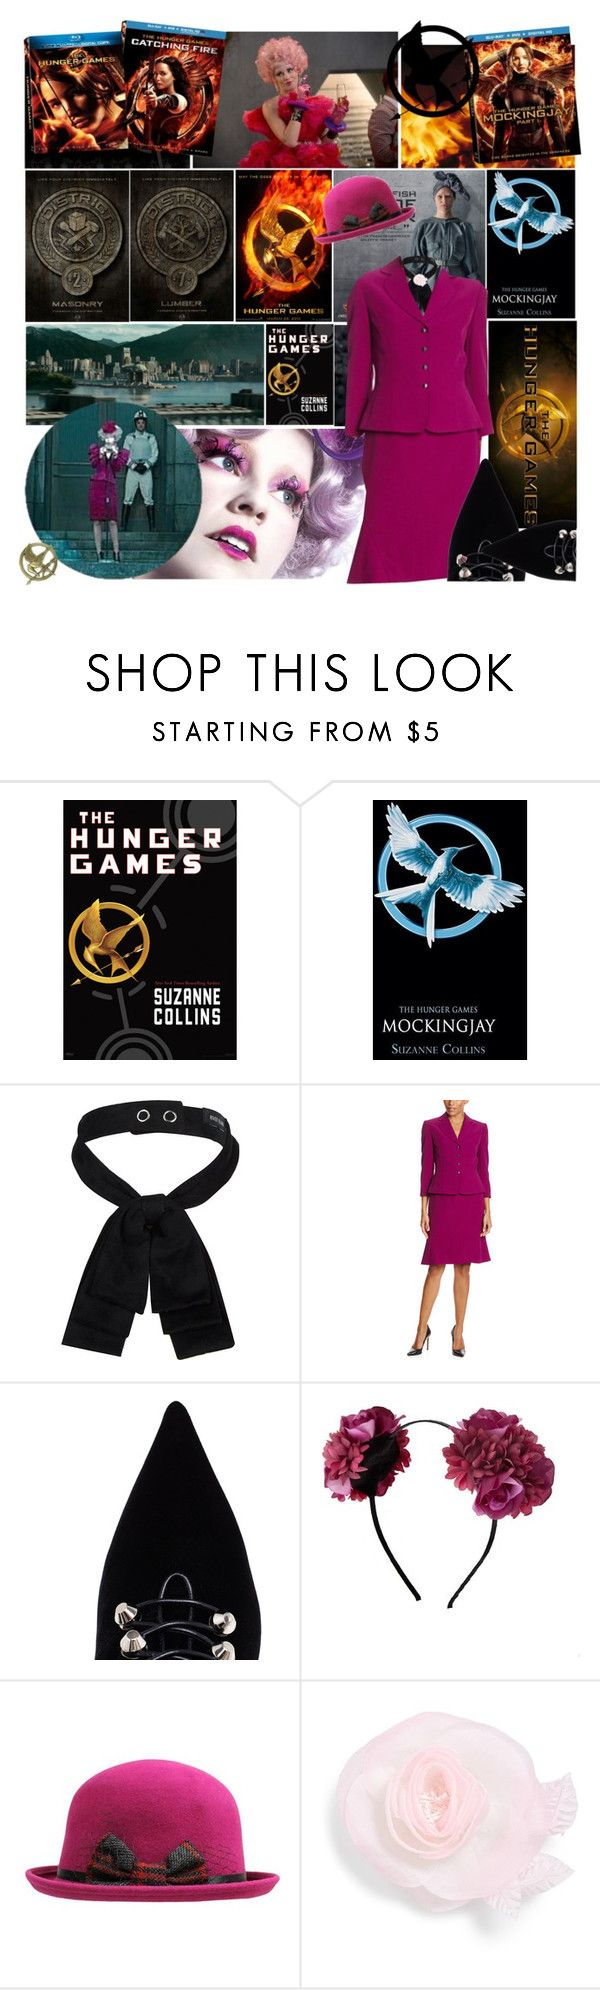 """""""Hunger Games Style - Effie Trinket"""" by mad-one ❤ liked on Polyvore featuring moda, China Glaze, River Island, Tahari by Arthur S. Levine, Balenciaga, Topshop, Cara, Hungergames y contestentry"""